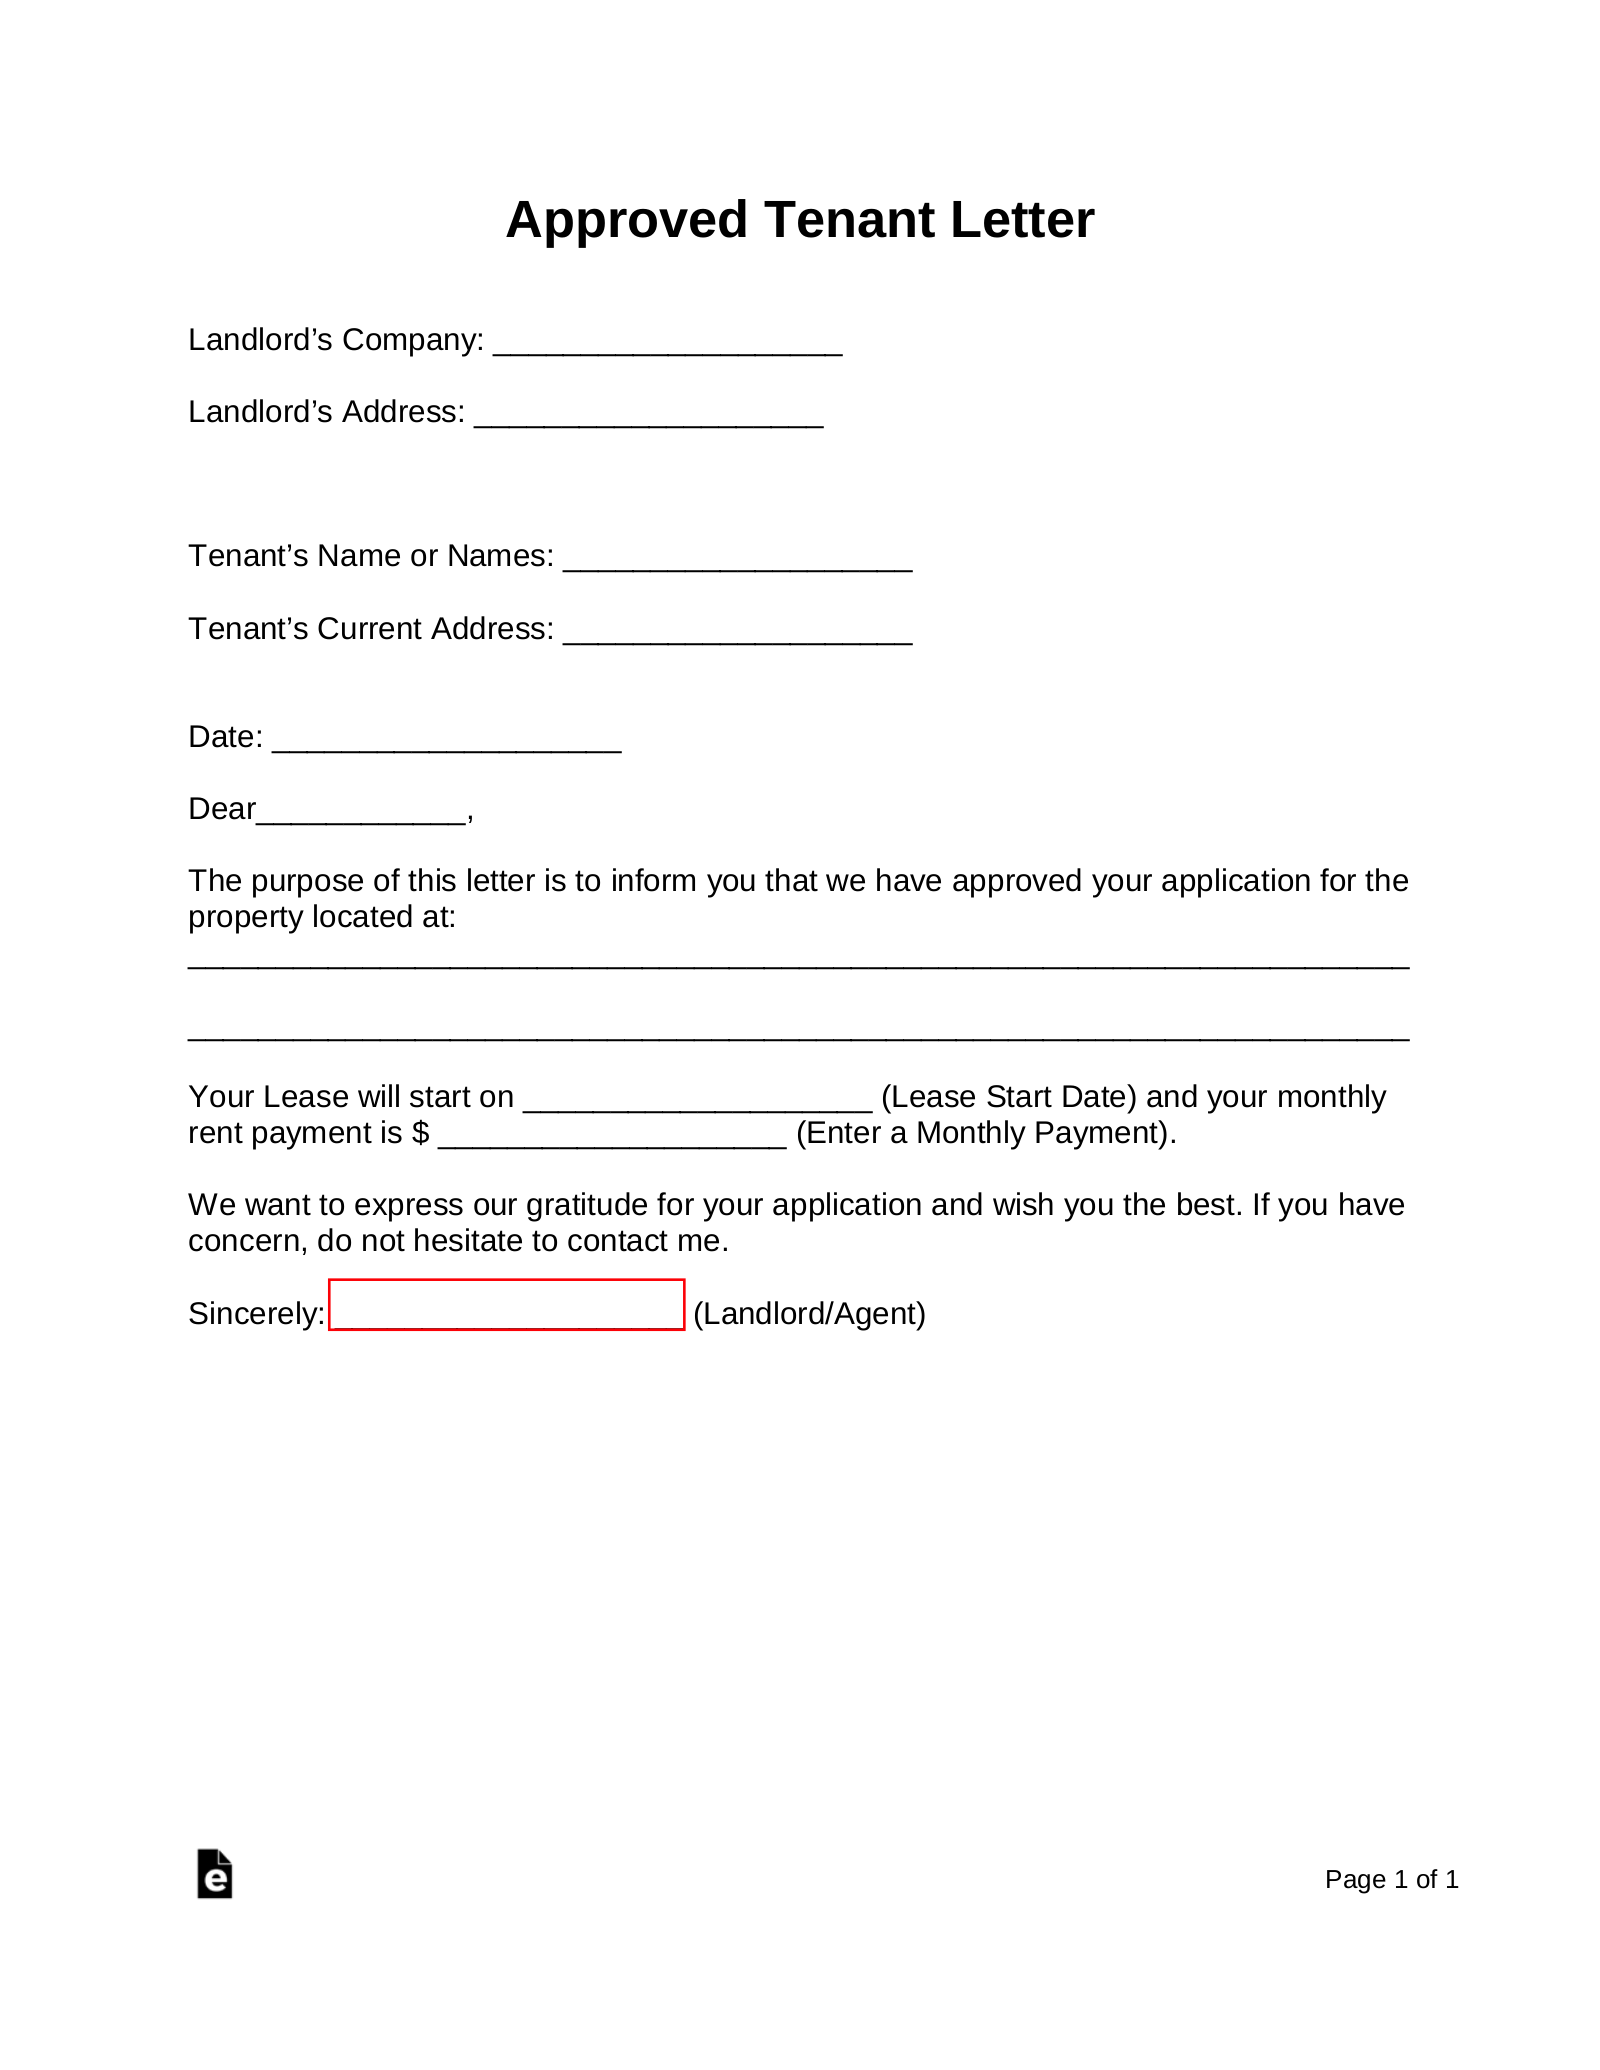 Rental Application Letter To Landlord from eforms.com